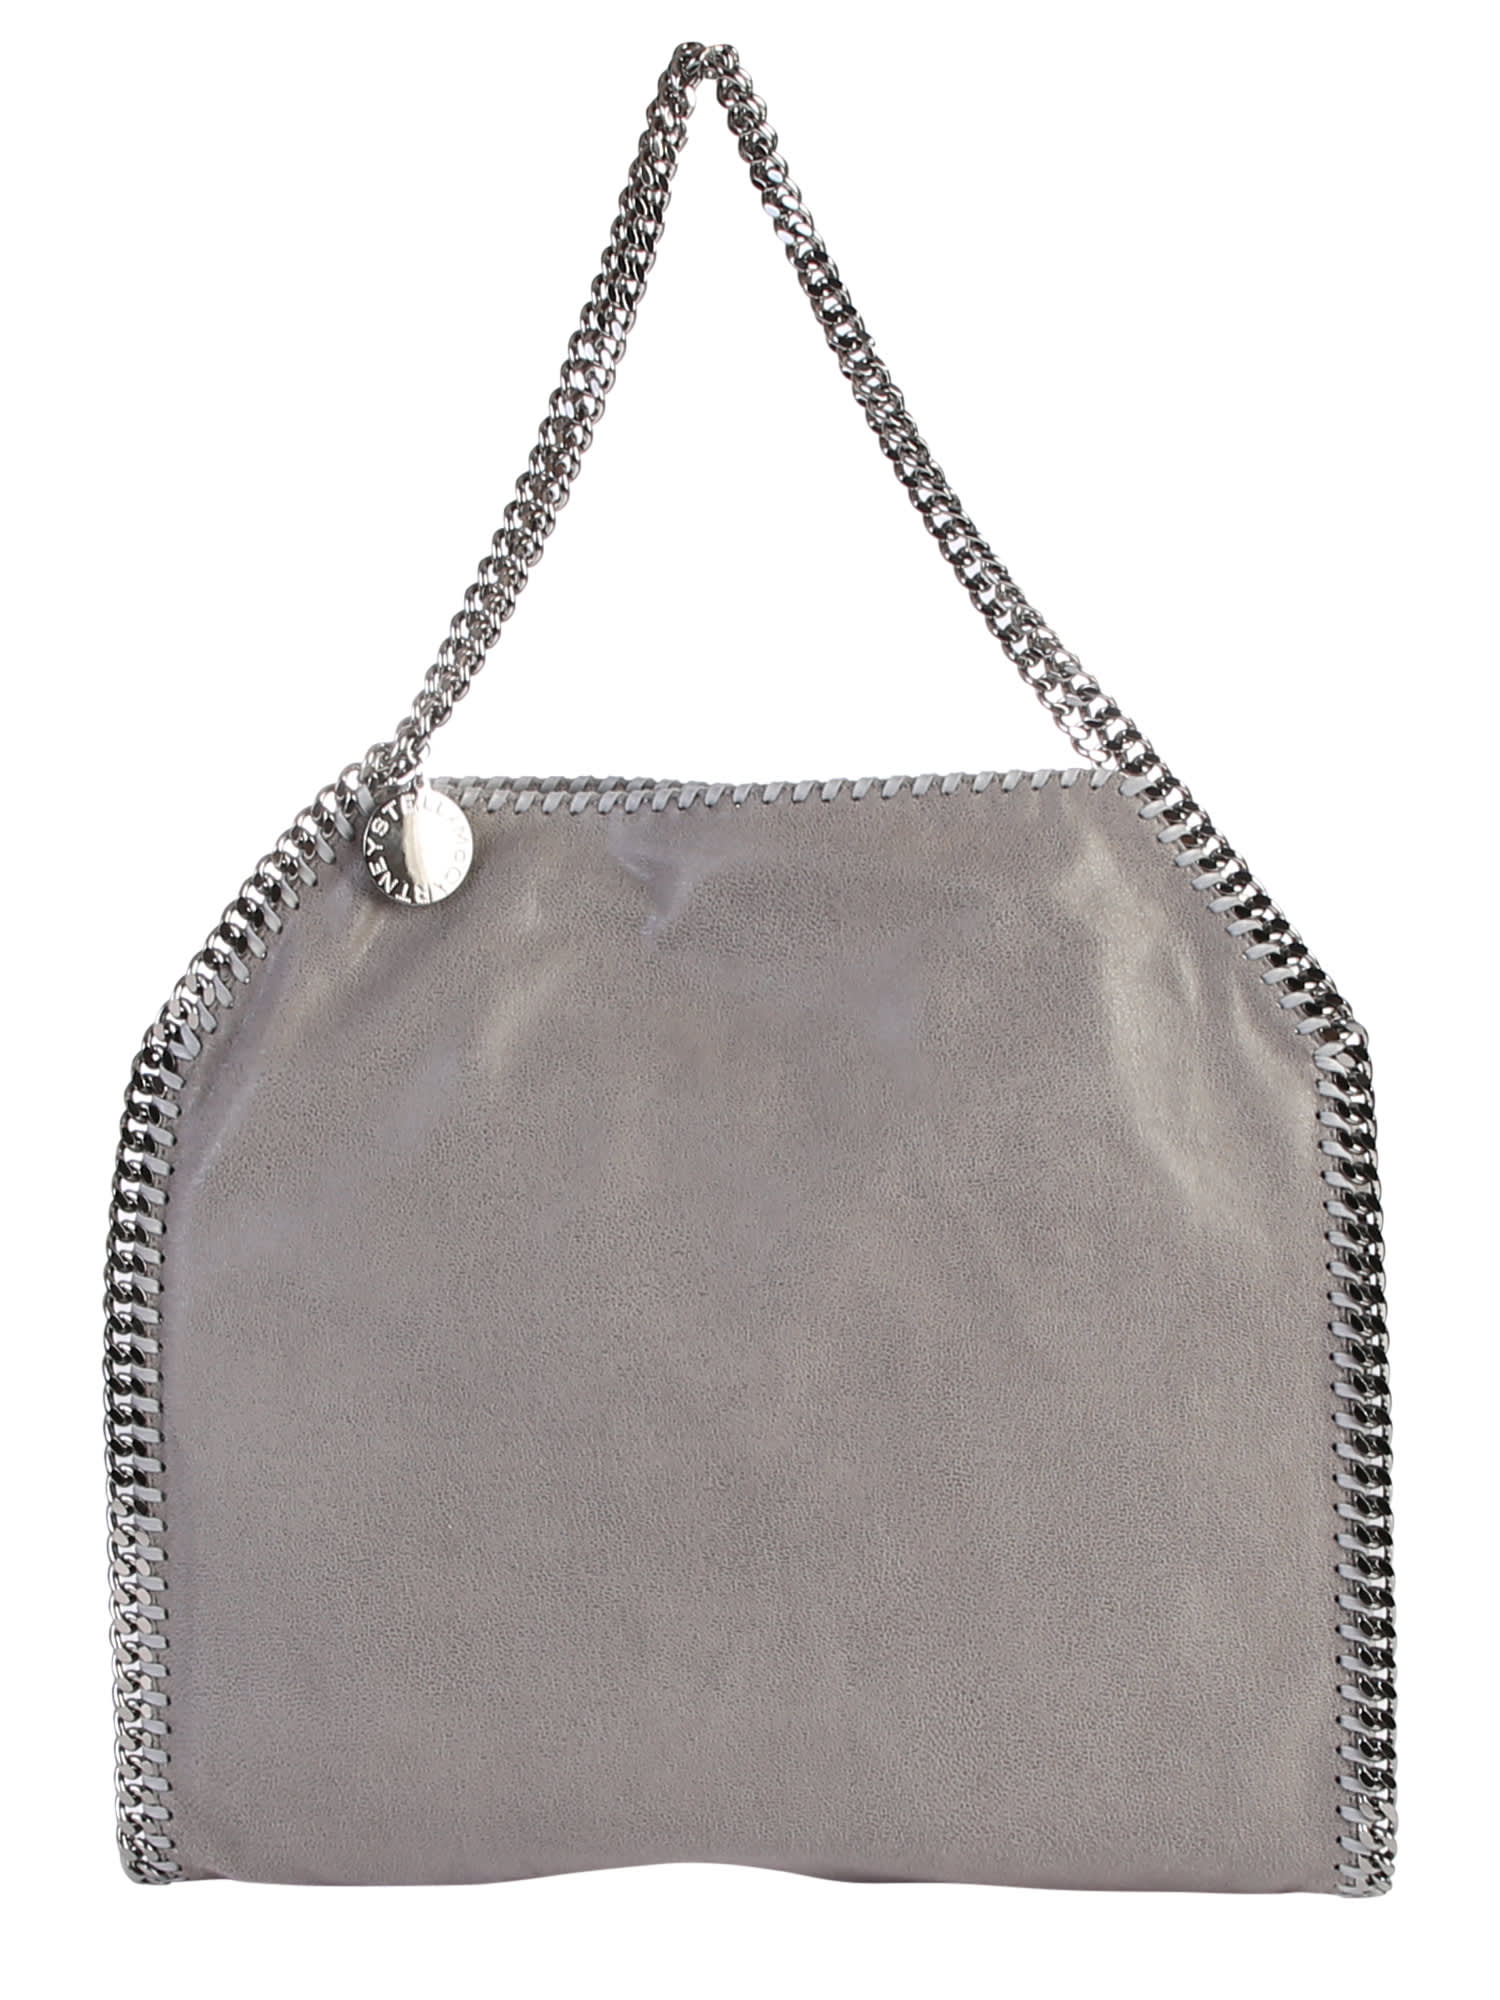 Stella McCartney Grey Falabella Double Chain Bag